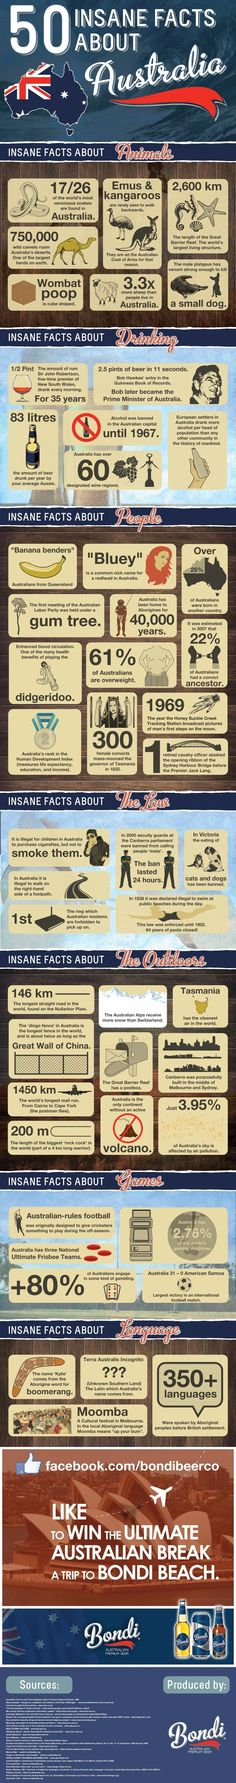 50 insane facts about Australia some really interesting facts